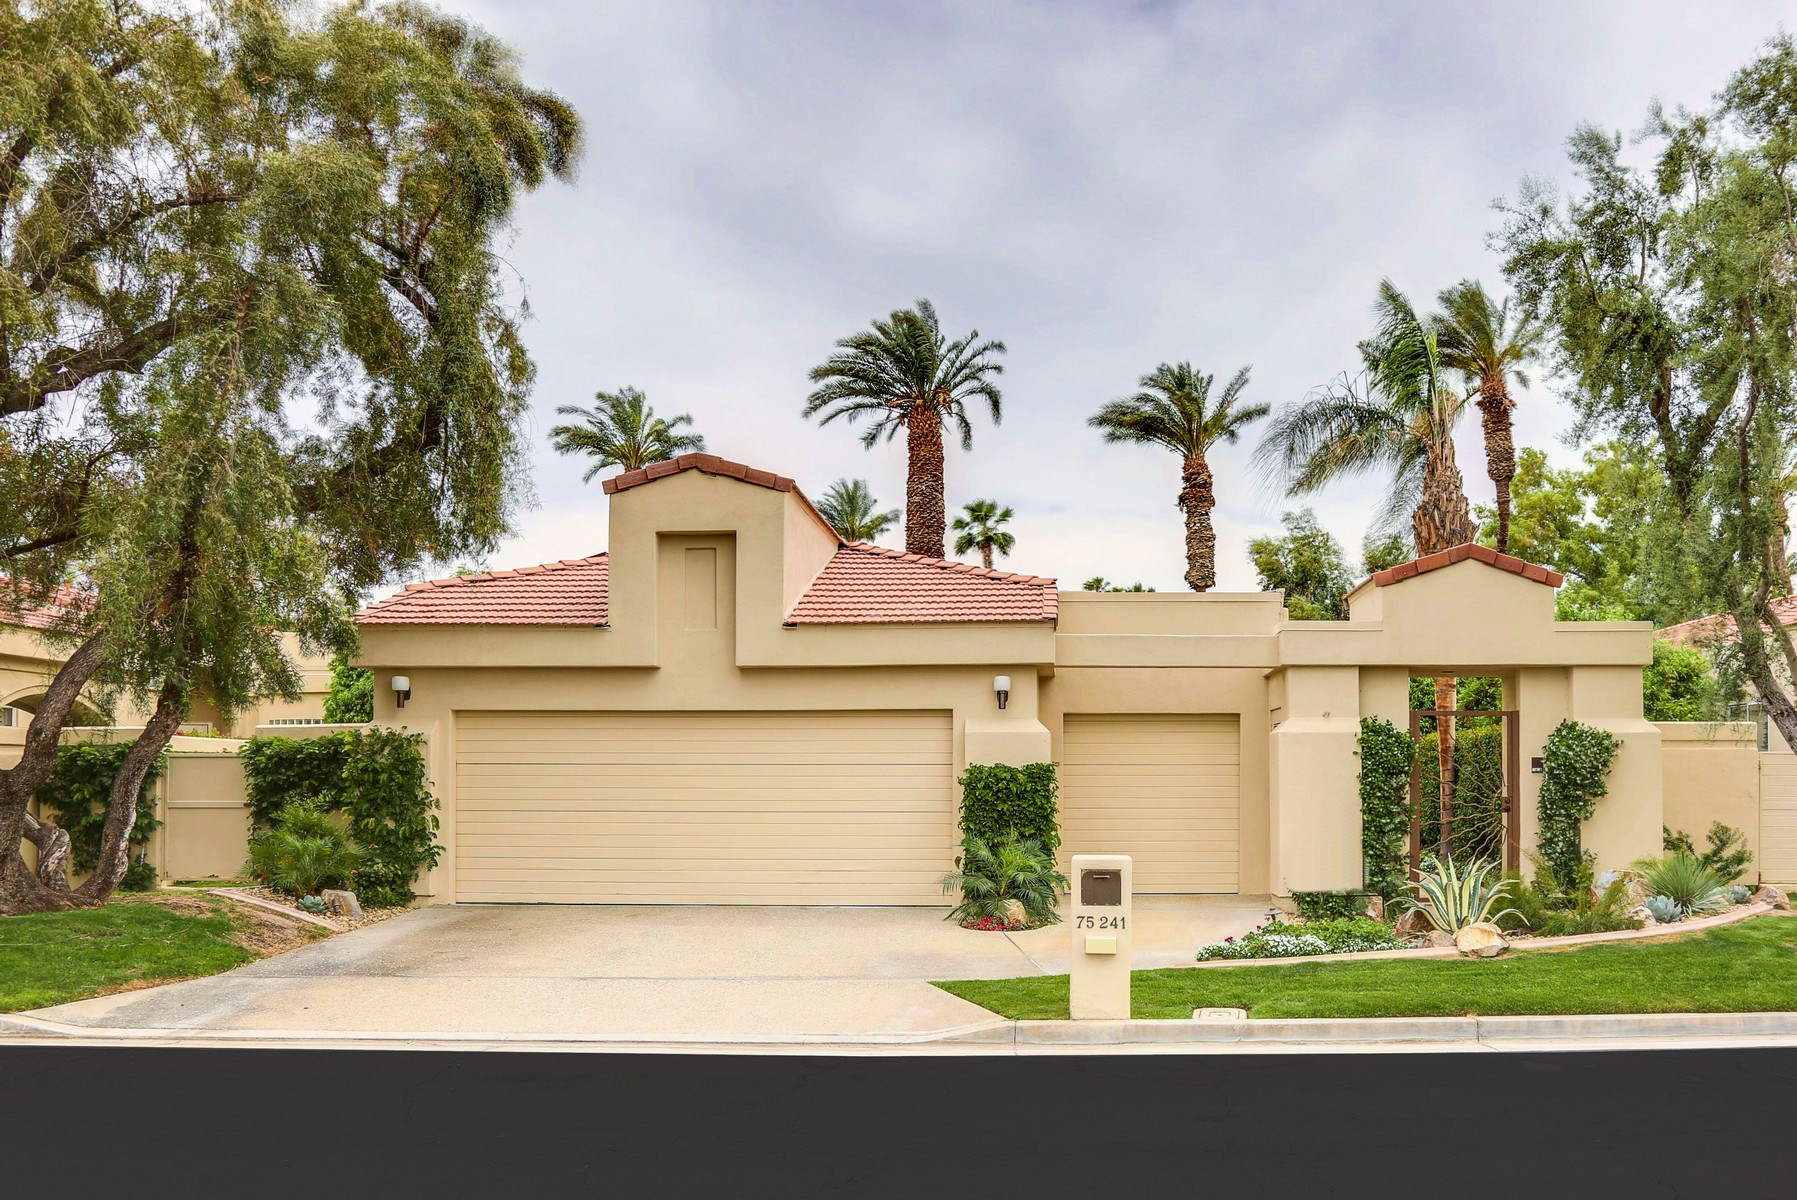 Single Family Home for Sale at 75241 Spyglass Drive Indian Wells, California, 92210 United States